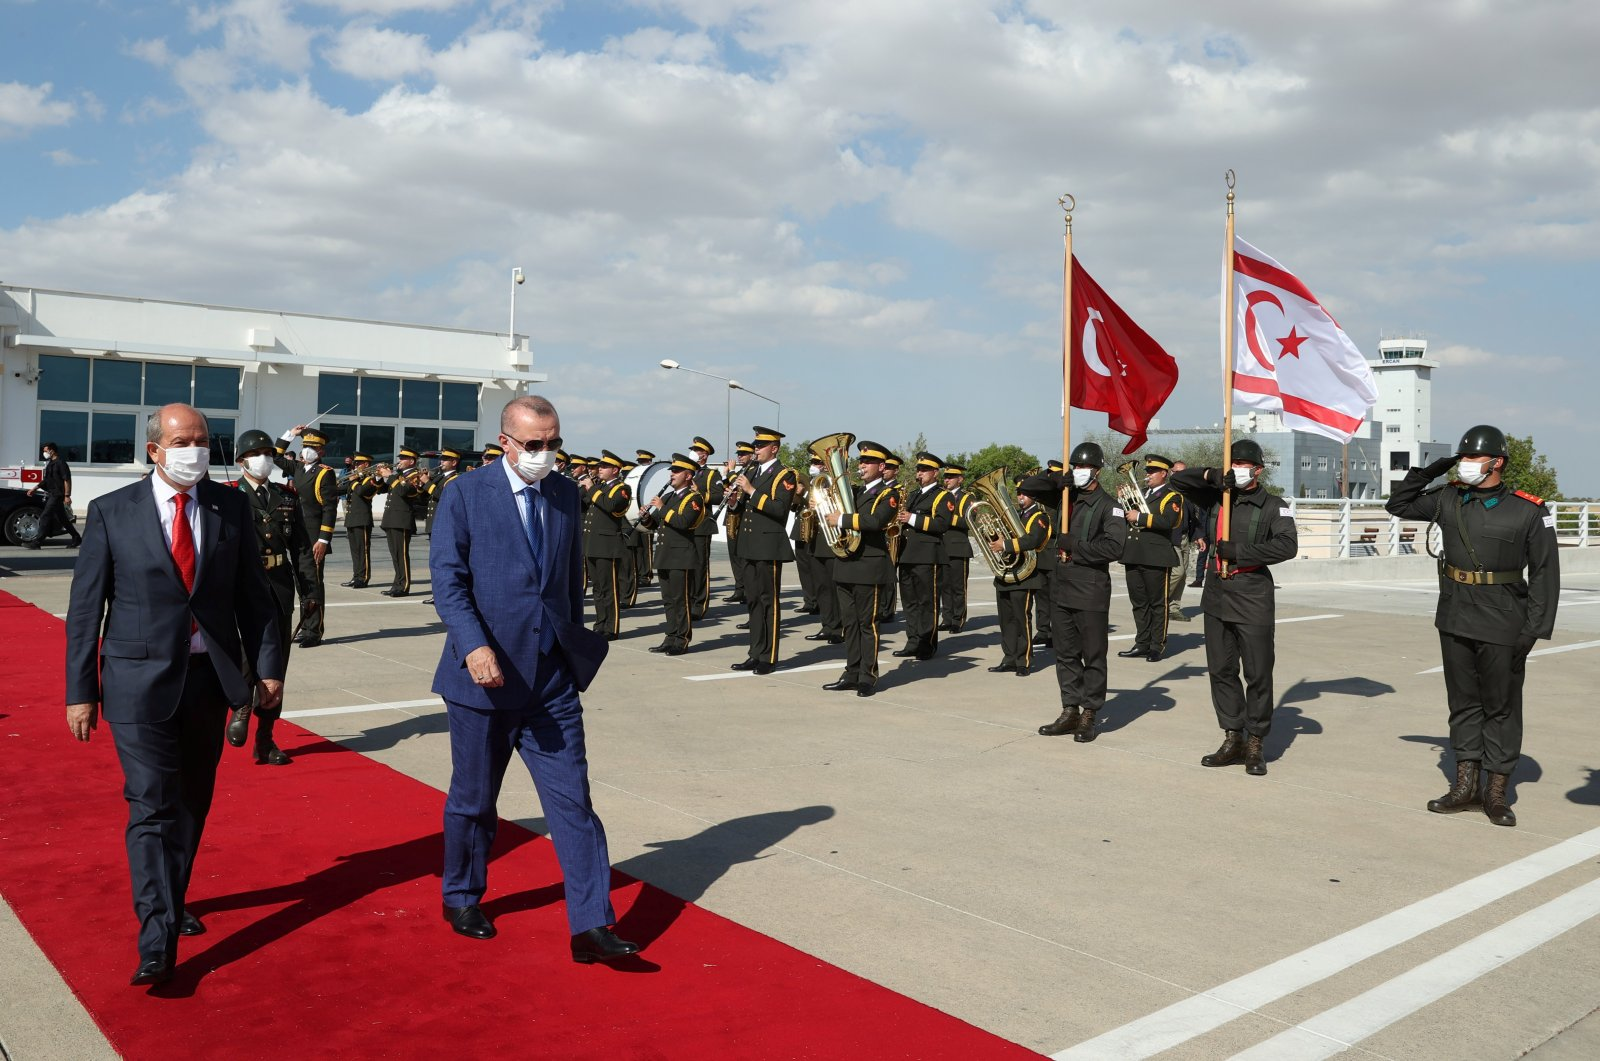 President Recep Tayyip Erdoğan (R) reviews a guard of honour with Turkish Cypriot President Ersin Tatar before he departs from the Turkish Republic of Northern Cyprus (TRNC) in Lefkoşa (Nicosia), TRNC, July 20, 2021. (REUTERS Photo)